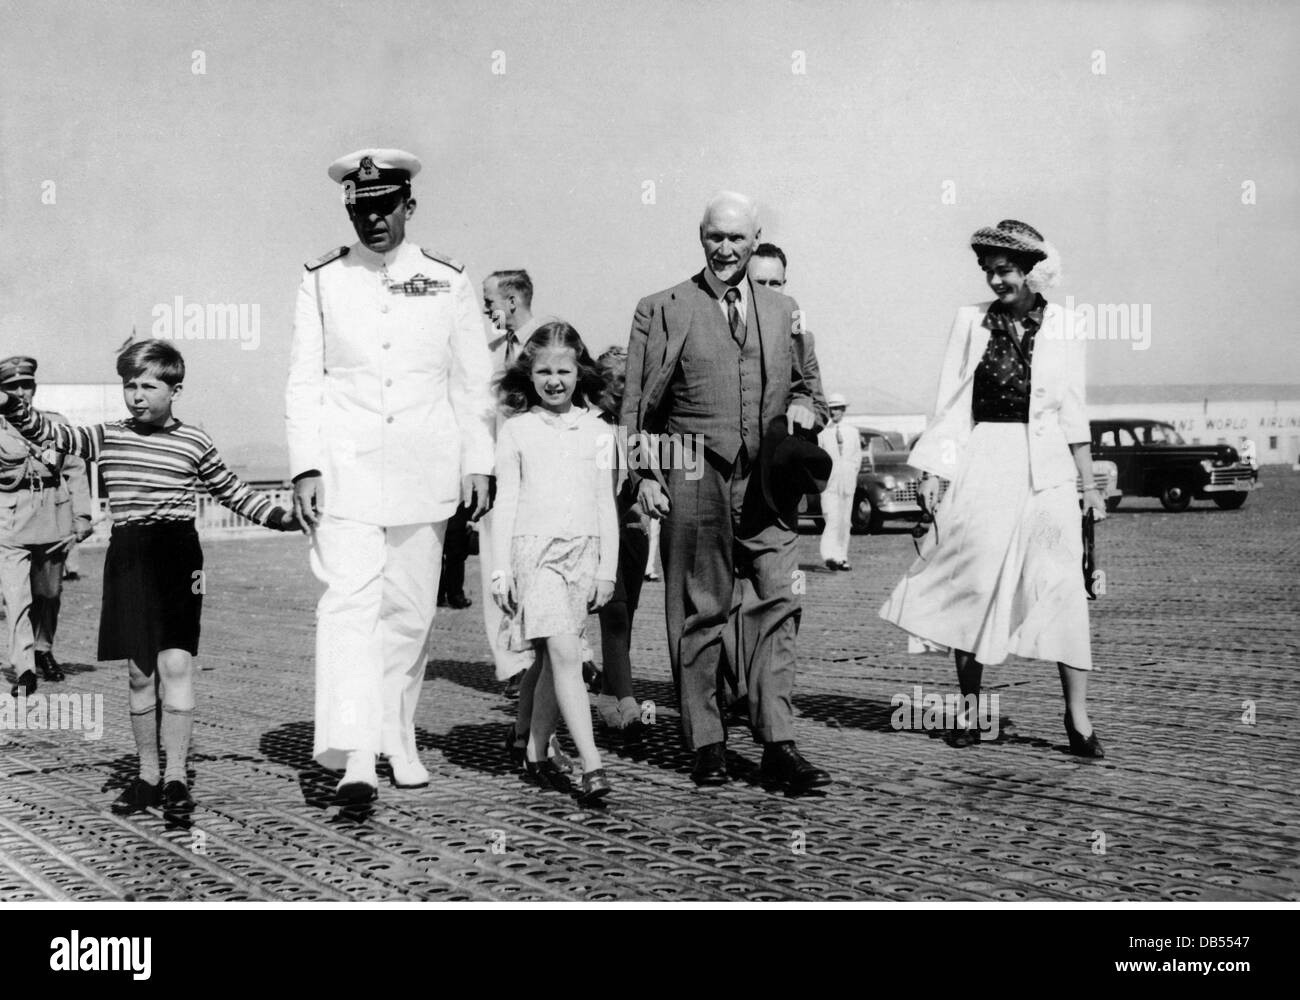 Smuts, Jan Christian, 24.5.1870 - 11.9.1950, South African politician, visit to Greece, with King Paul I, Queen - Stock Image